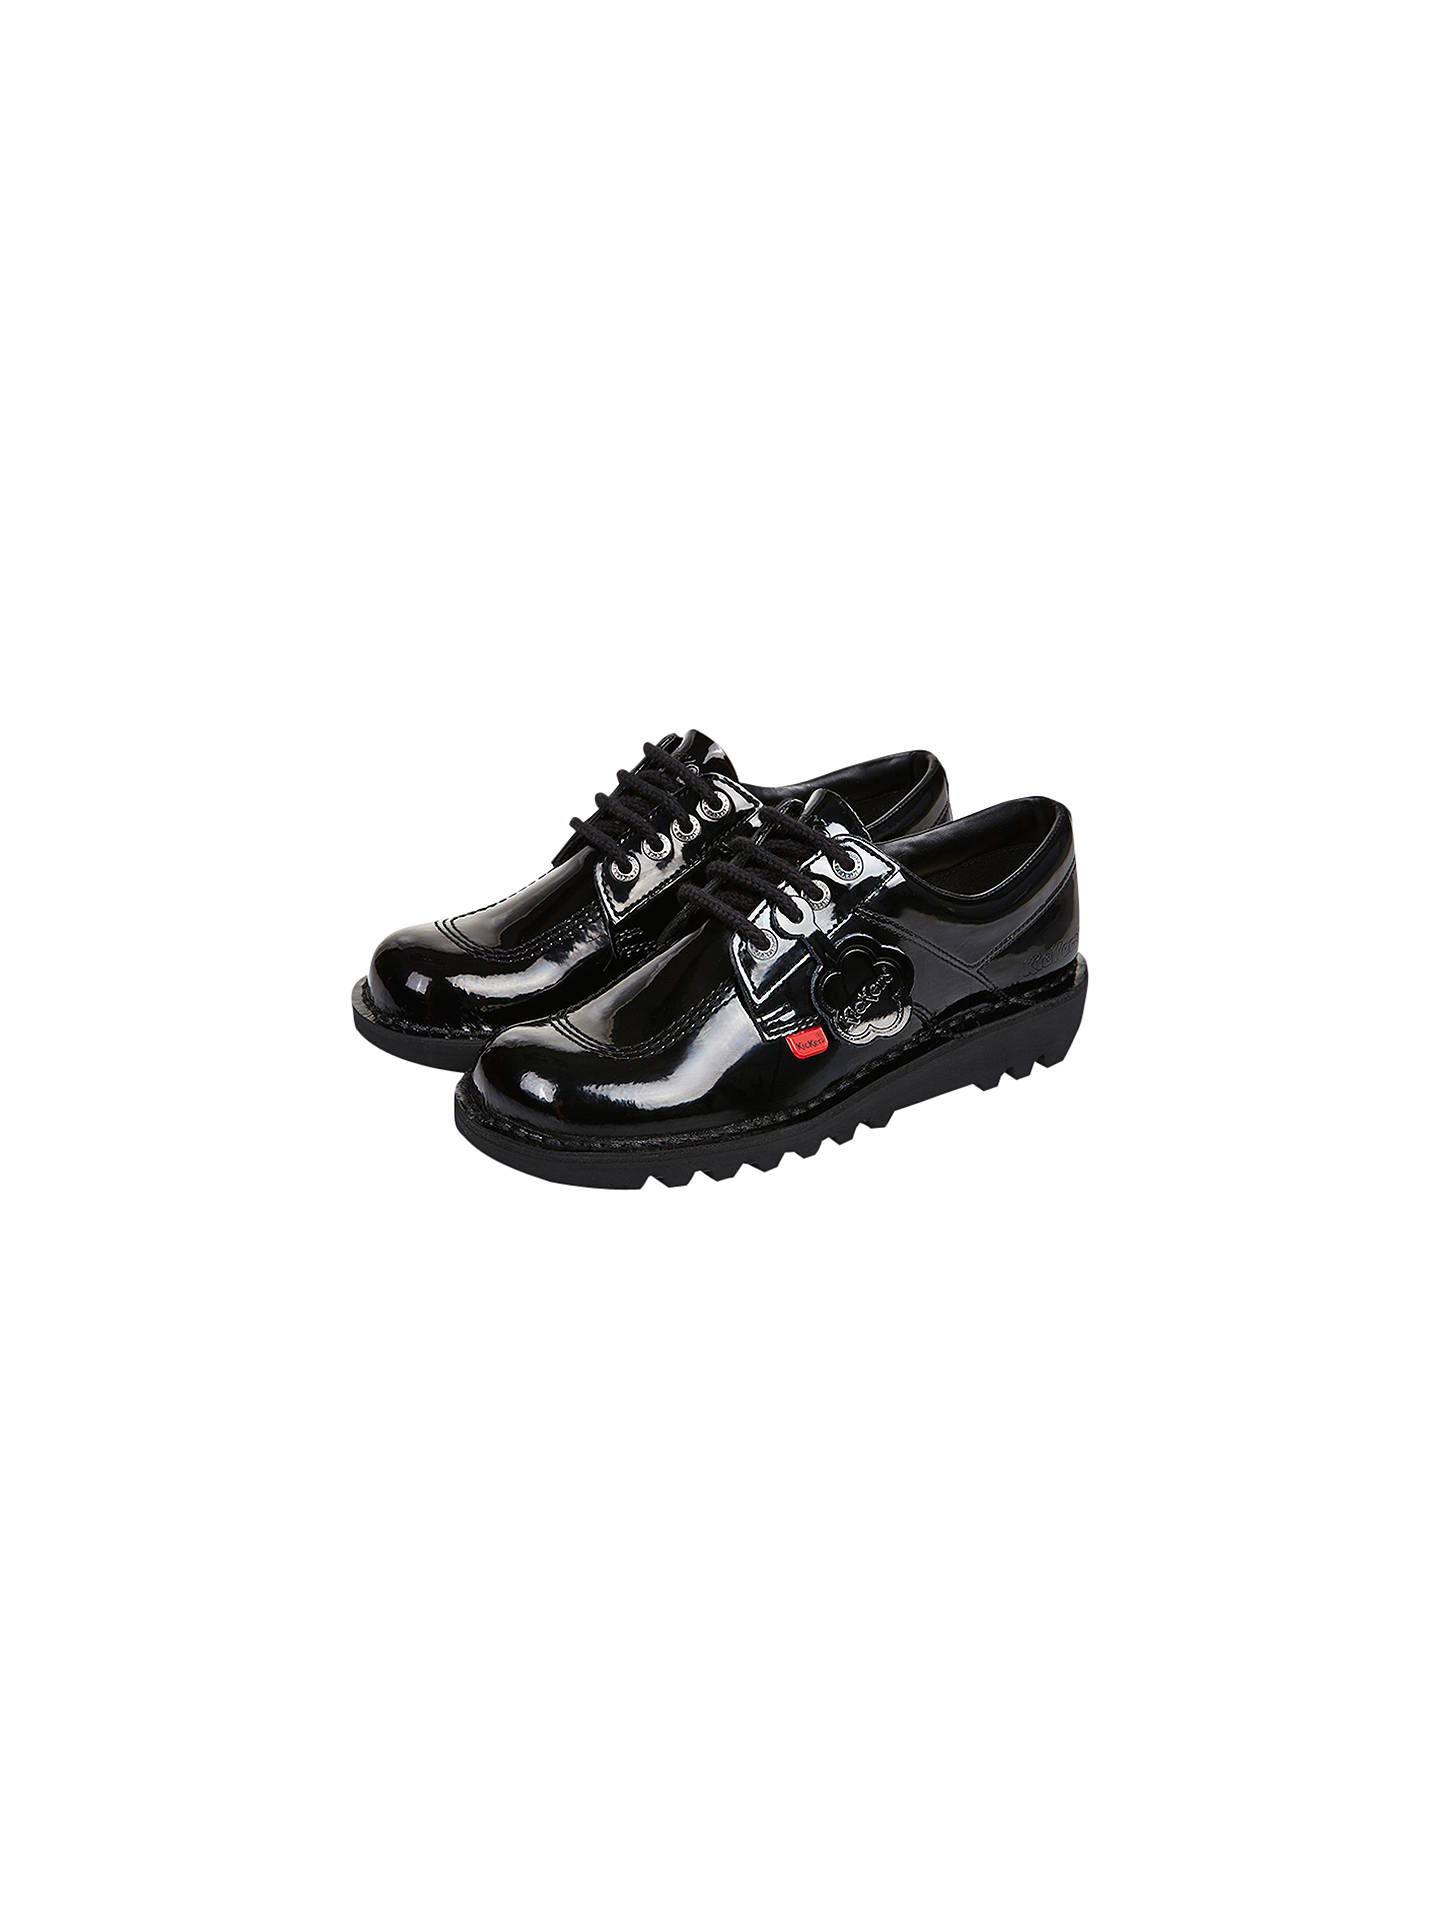 b014ff90 Buy Kickers Children's Kick Lo Lace Up Shoes, Black Patent, 31 Online at  johnlewis